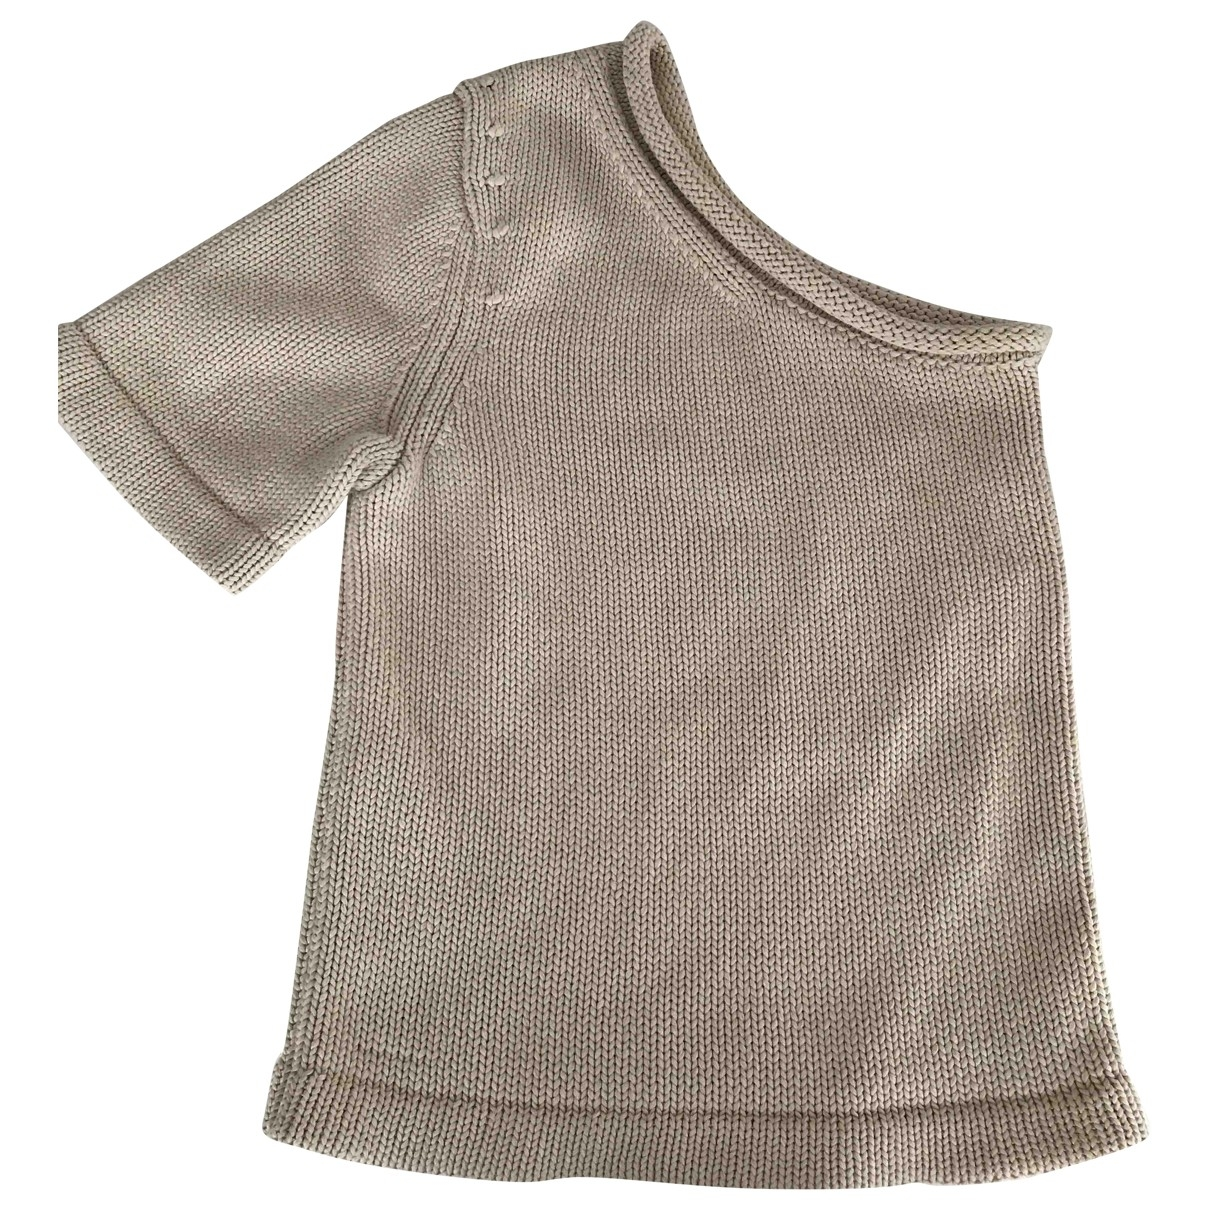 Cos \N Pullover in  Beige Wolle